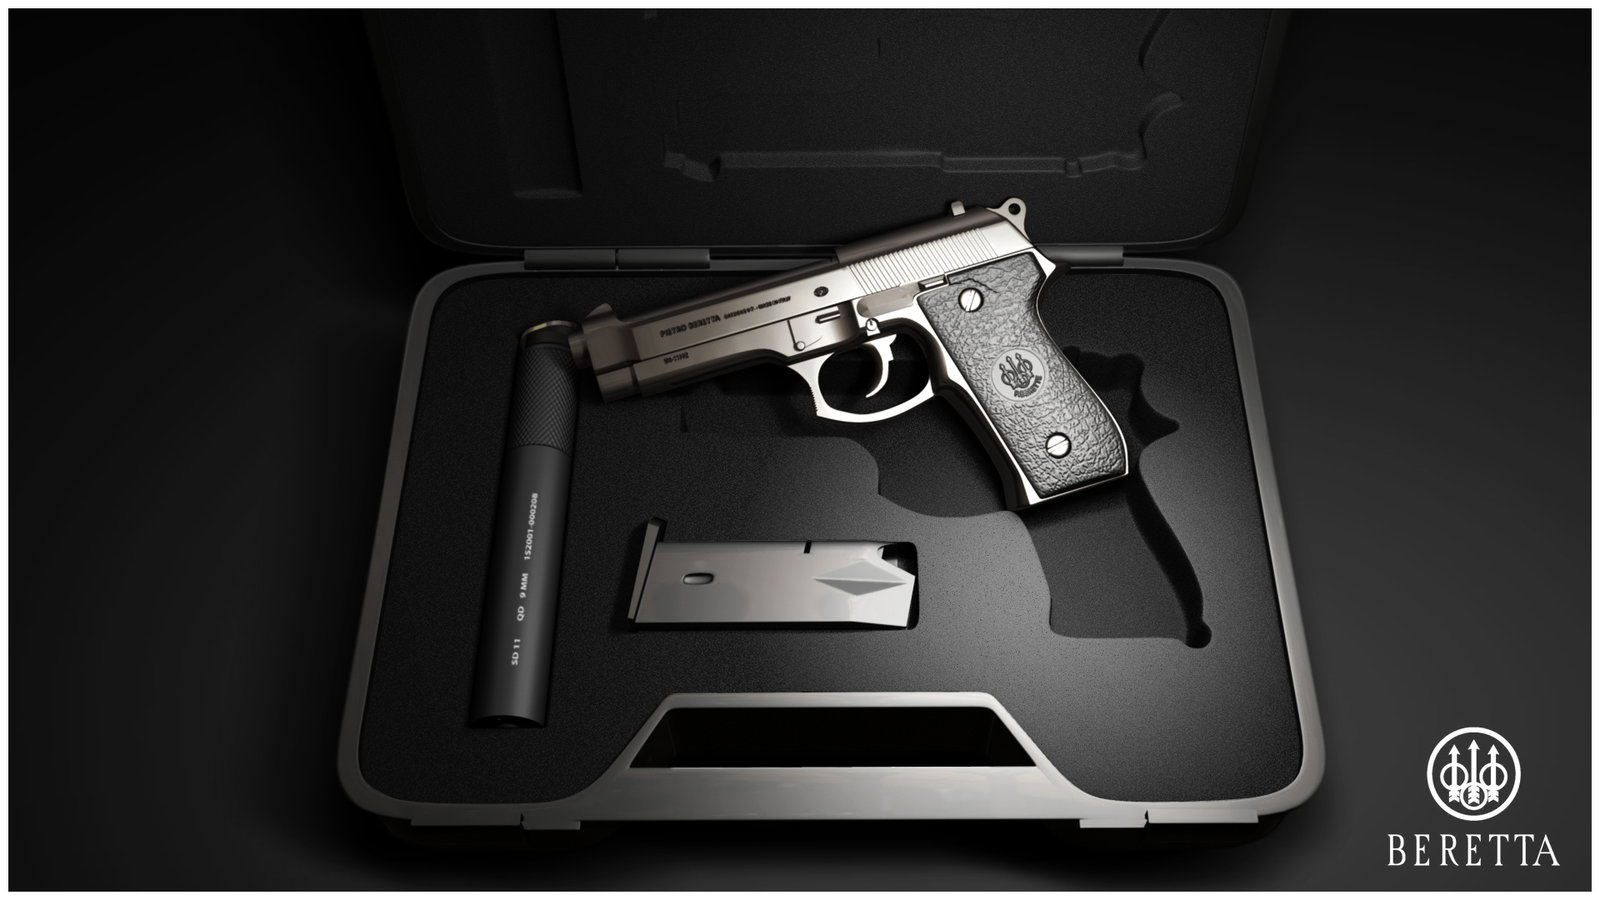 images about Beretta on Pinterest  Pistols, Pain depices 1600x900